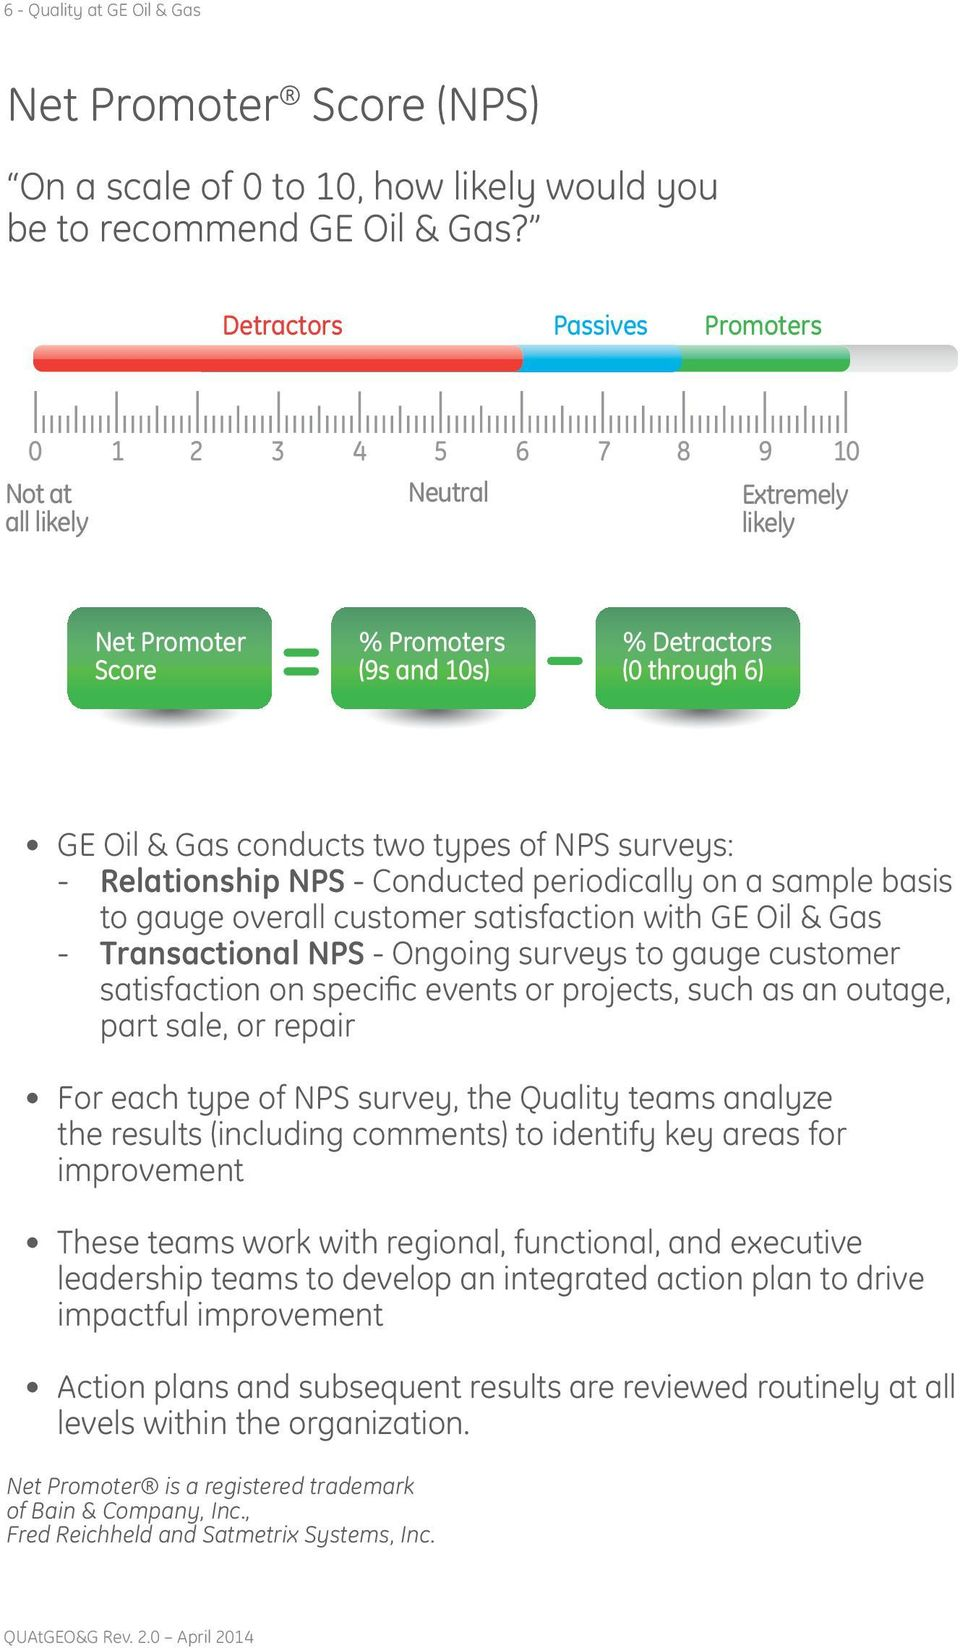 of NPS surveys: - Relationship NPS - Conducted periodically on a sample basis to gauge overall customer satisfaction with GE Oil & Gas - Transactional NPS - Ongoing surveys to gauge customer